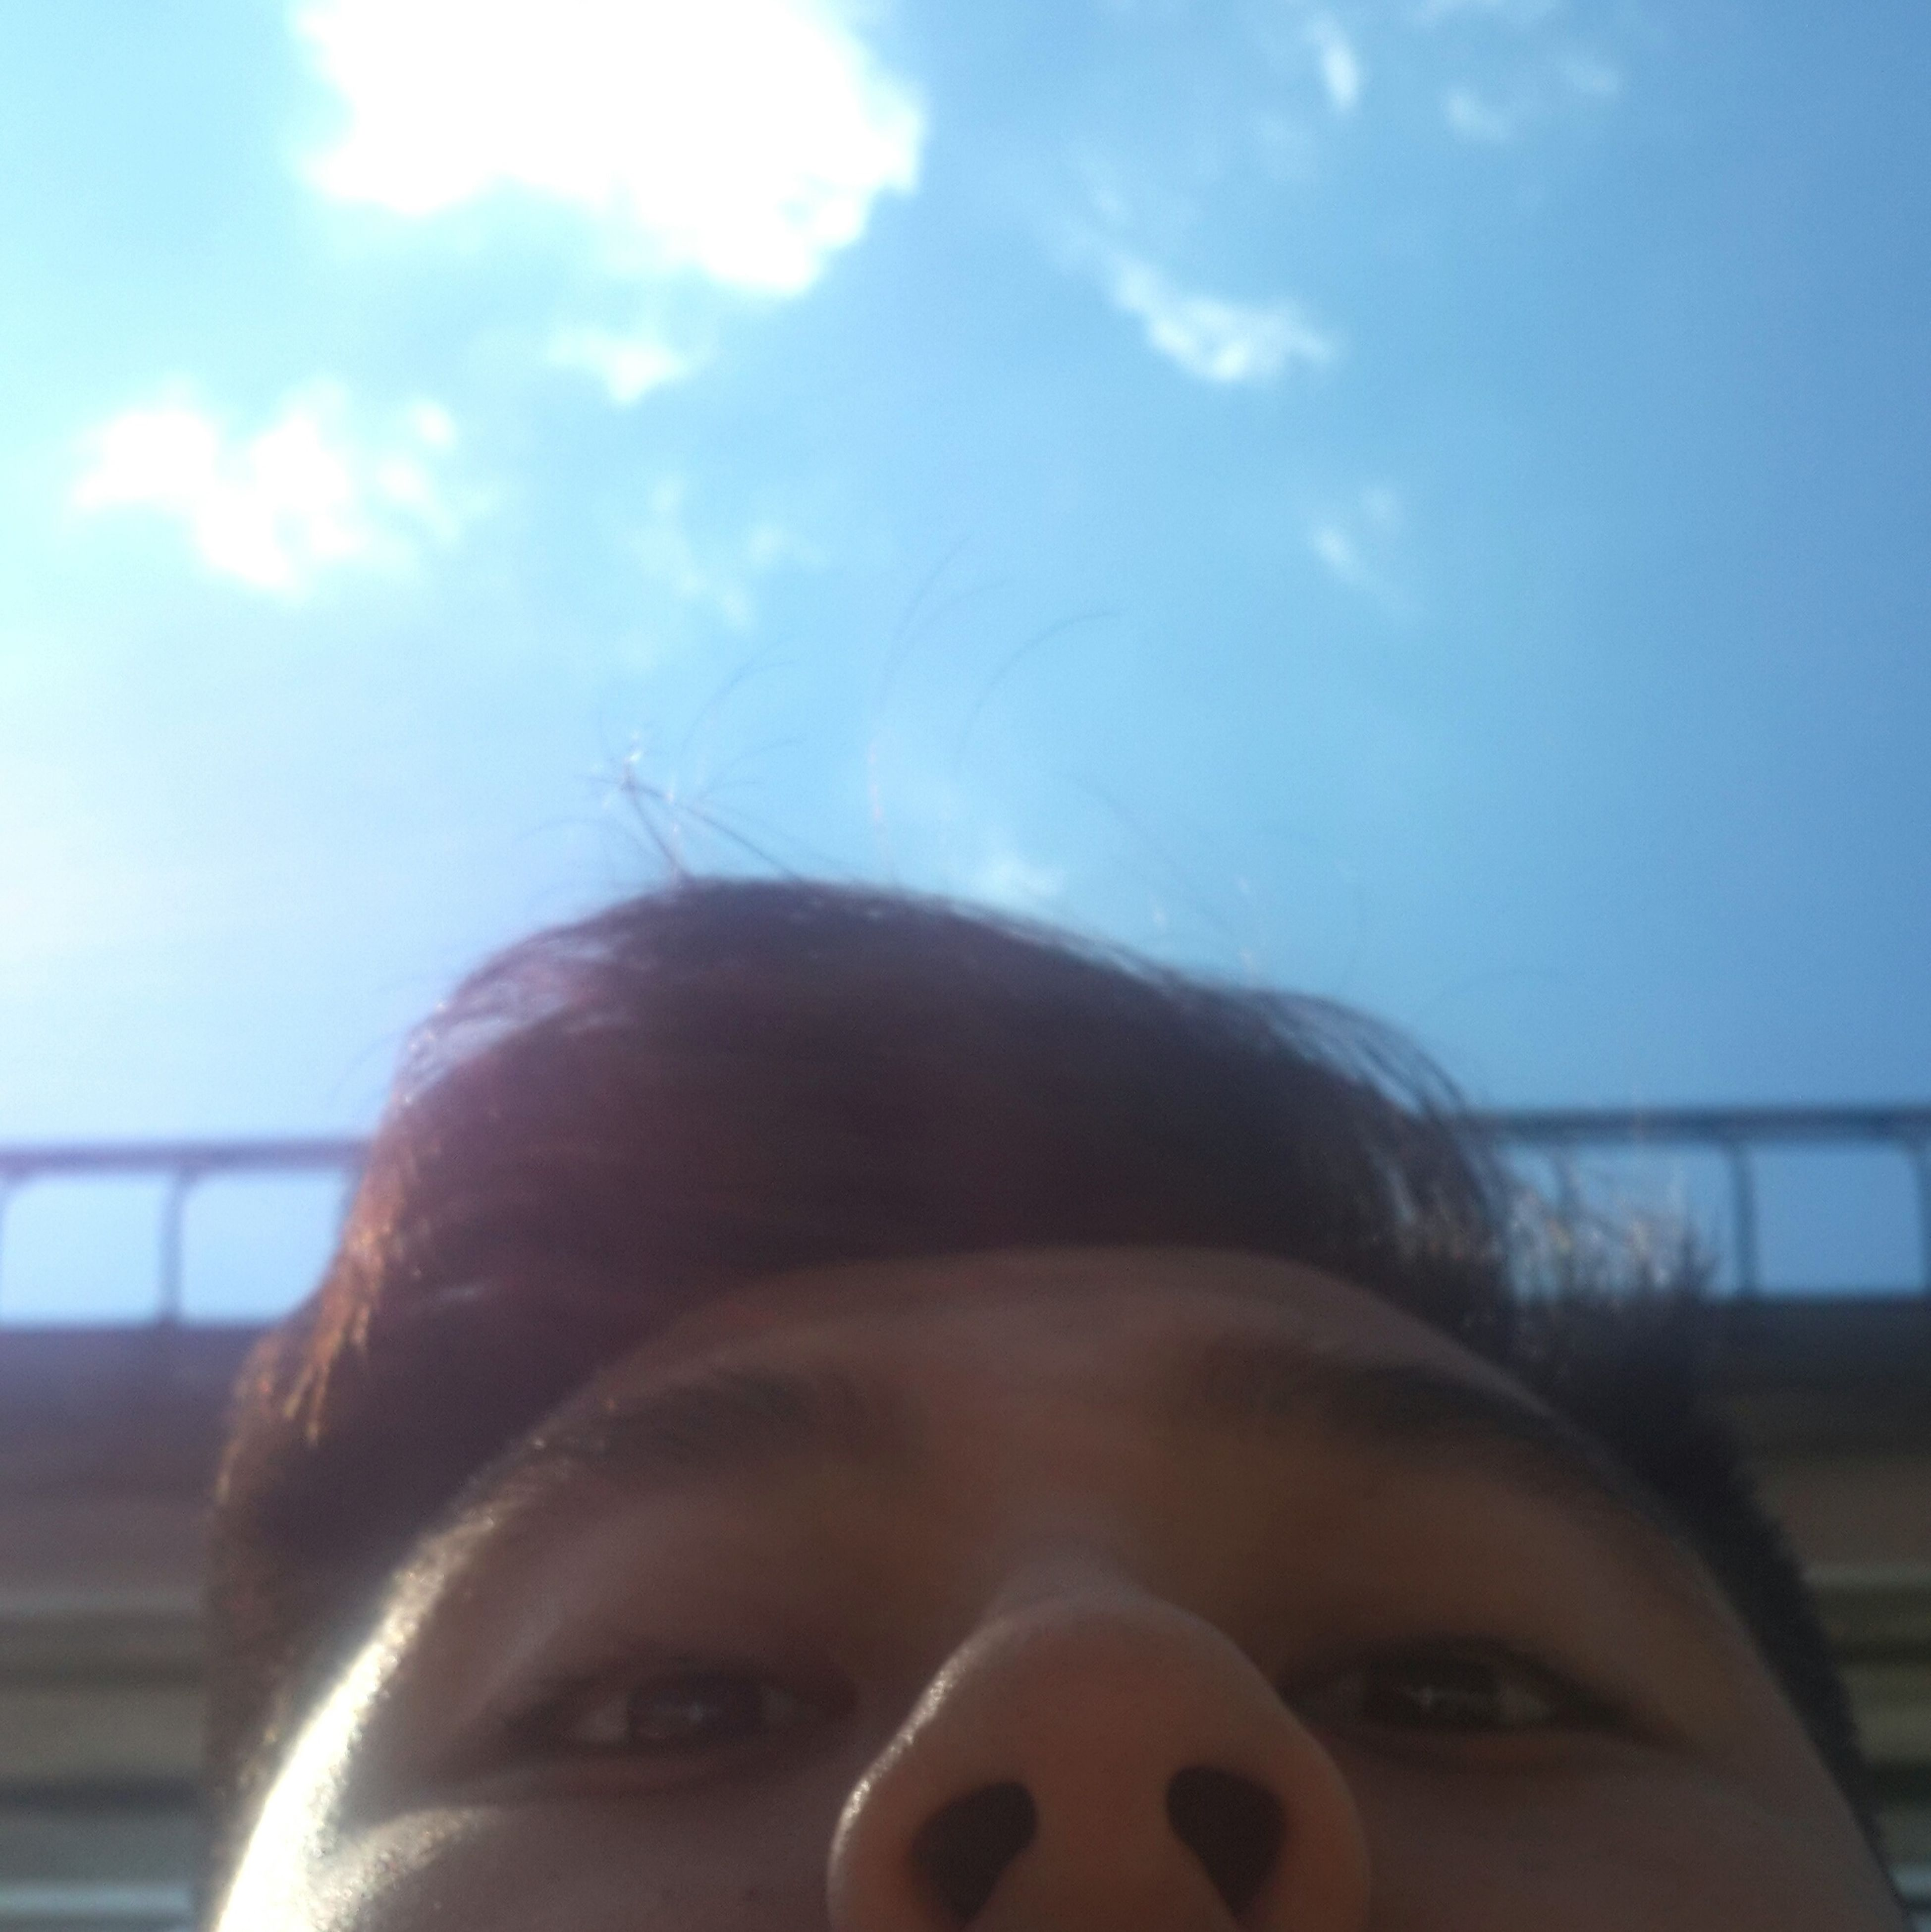 headshot, lifestyles, sky, close-up, leisure activity, head and shoulders, focus on foreground, person, human face, sunlight, sunglasses, young adult, portrait, day, looking at camera, low angle view, outdoors, front view